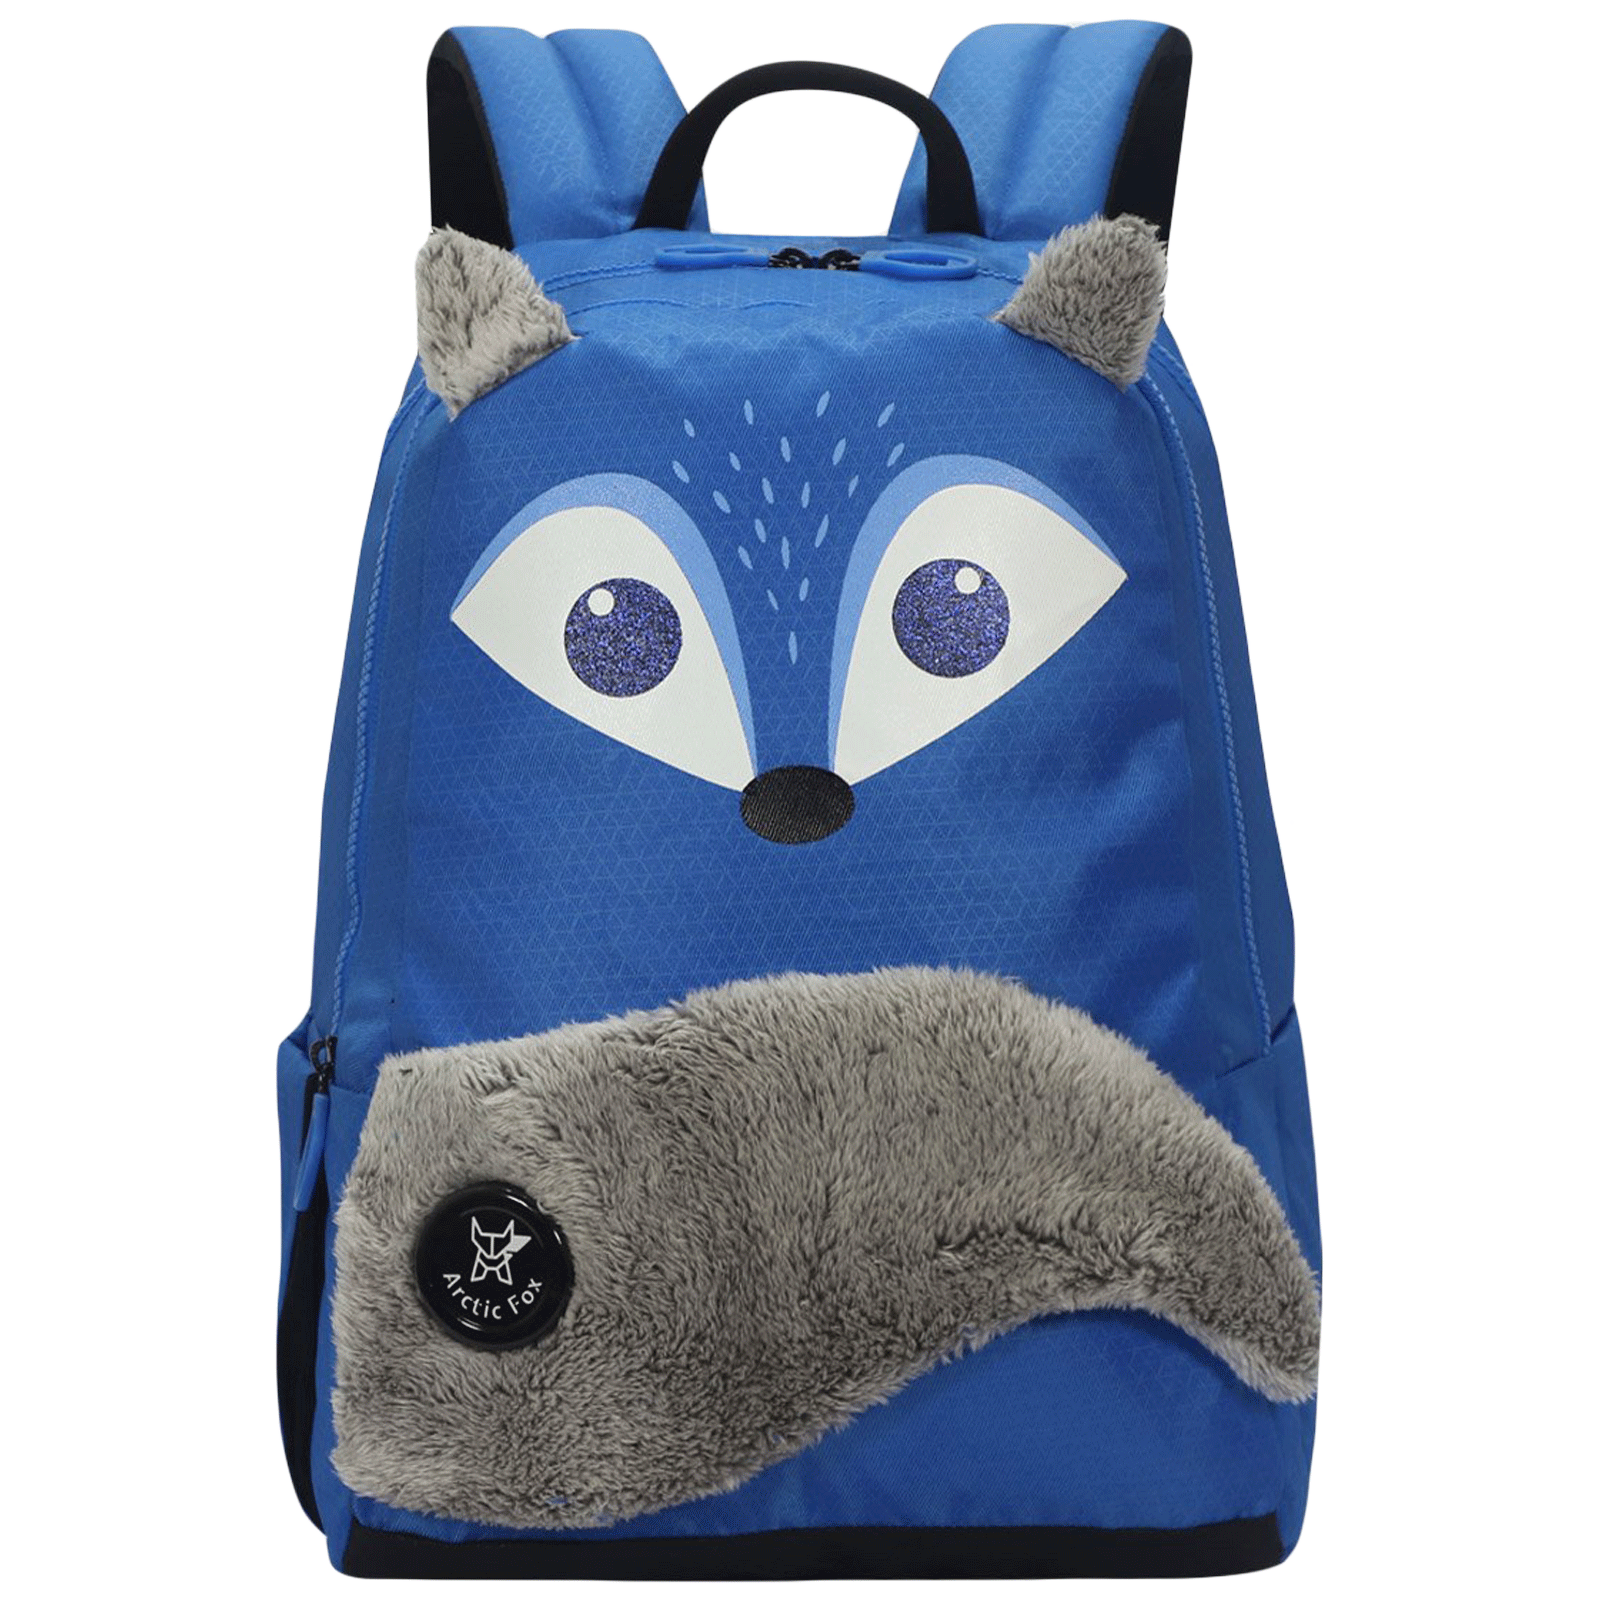 Arctic Fox He Fox 20 Litres PU Coated Polyester Backpack (2 Spacious Compartments, FJUBPKDTBWZ063020, Directorie Blue)_1